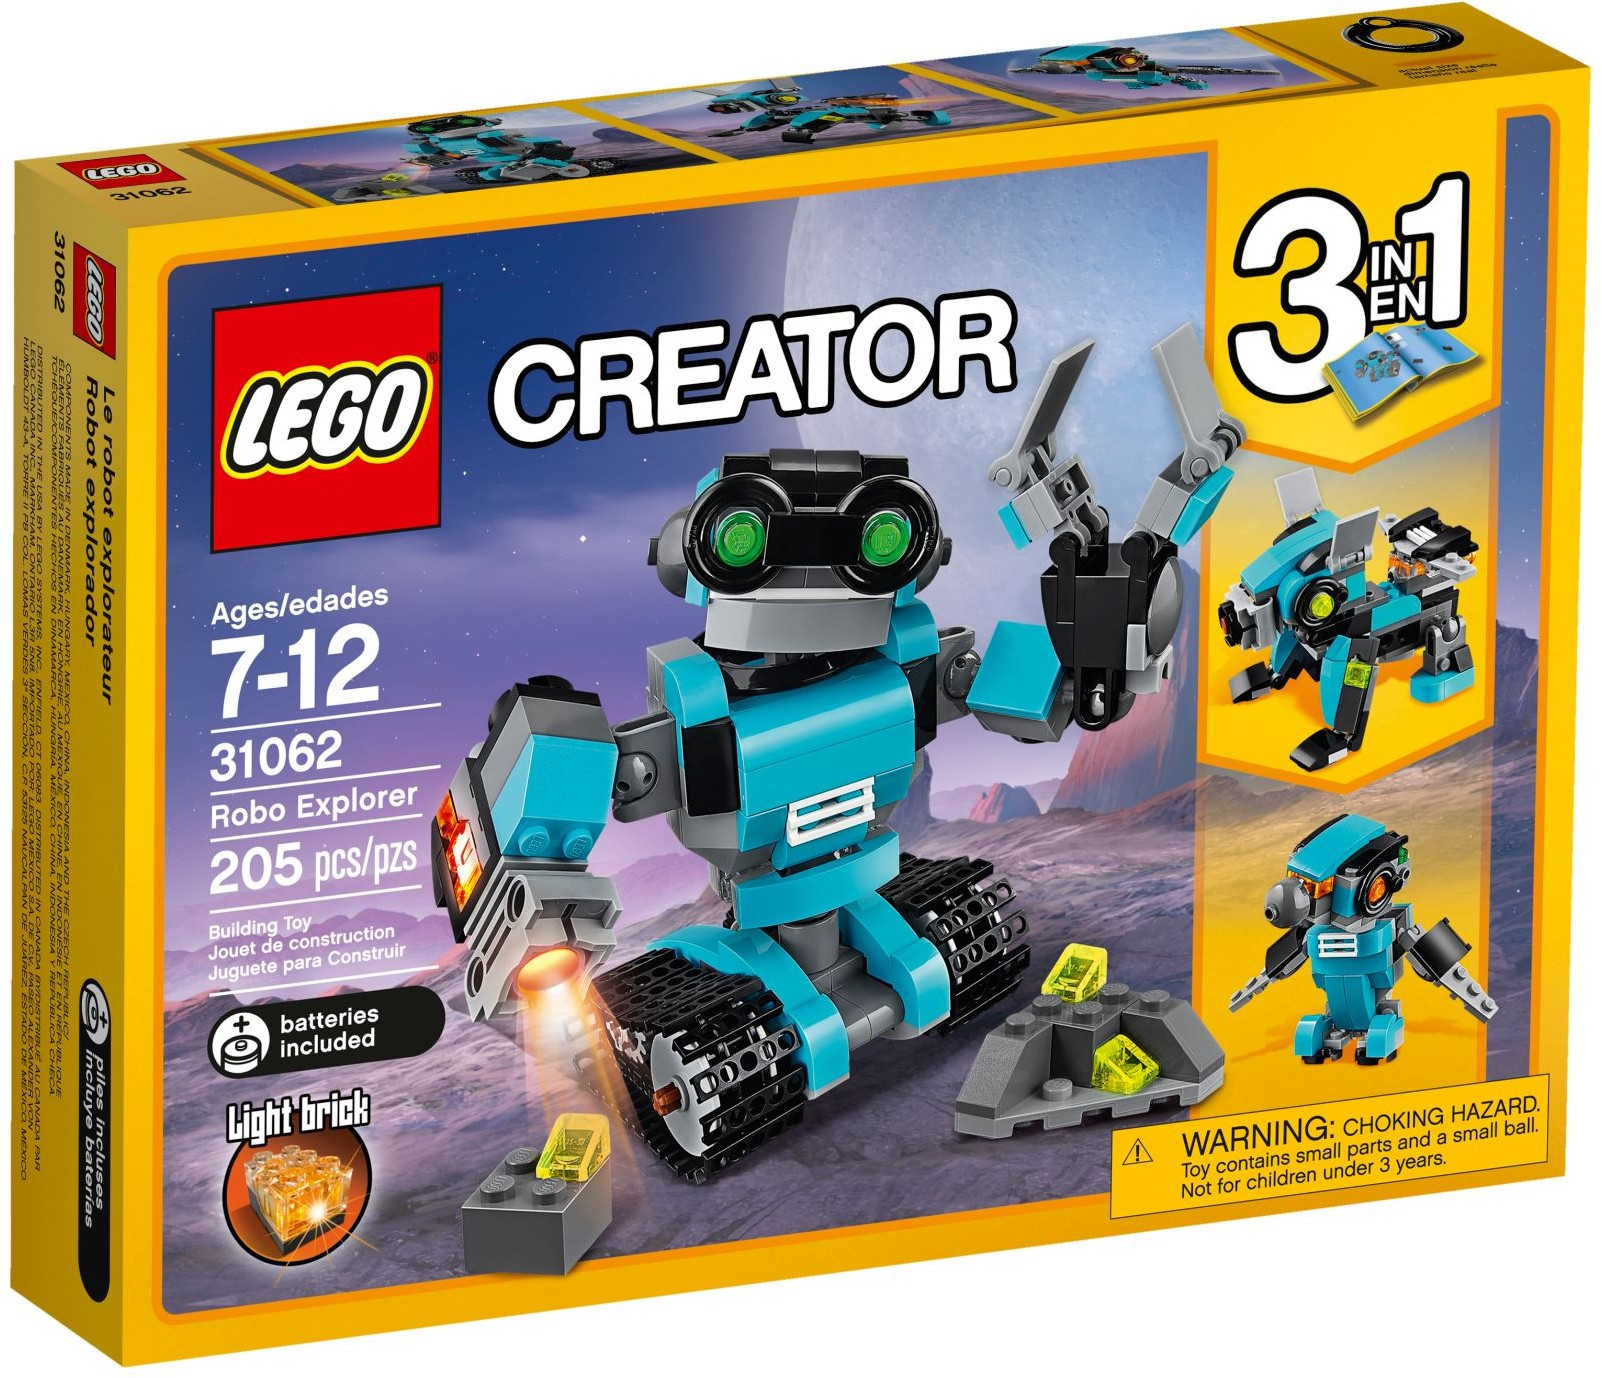 LEGO Creator Sets: 31062 Robo Explorer NEW  *Damaged Box*